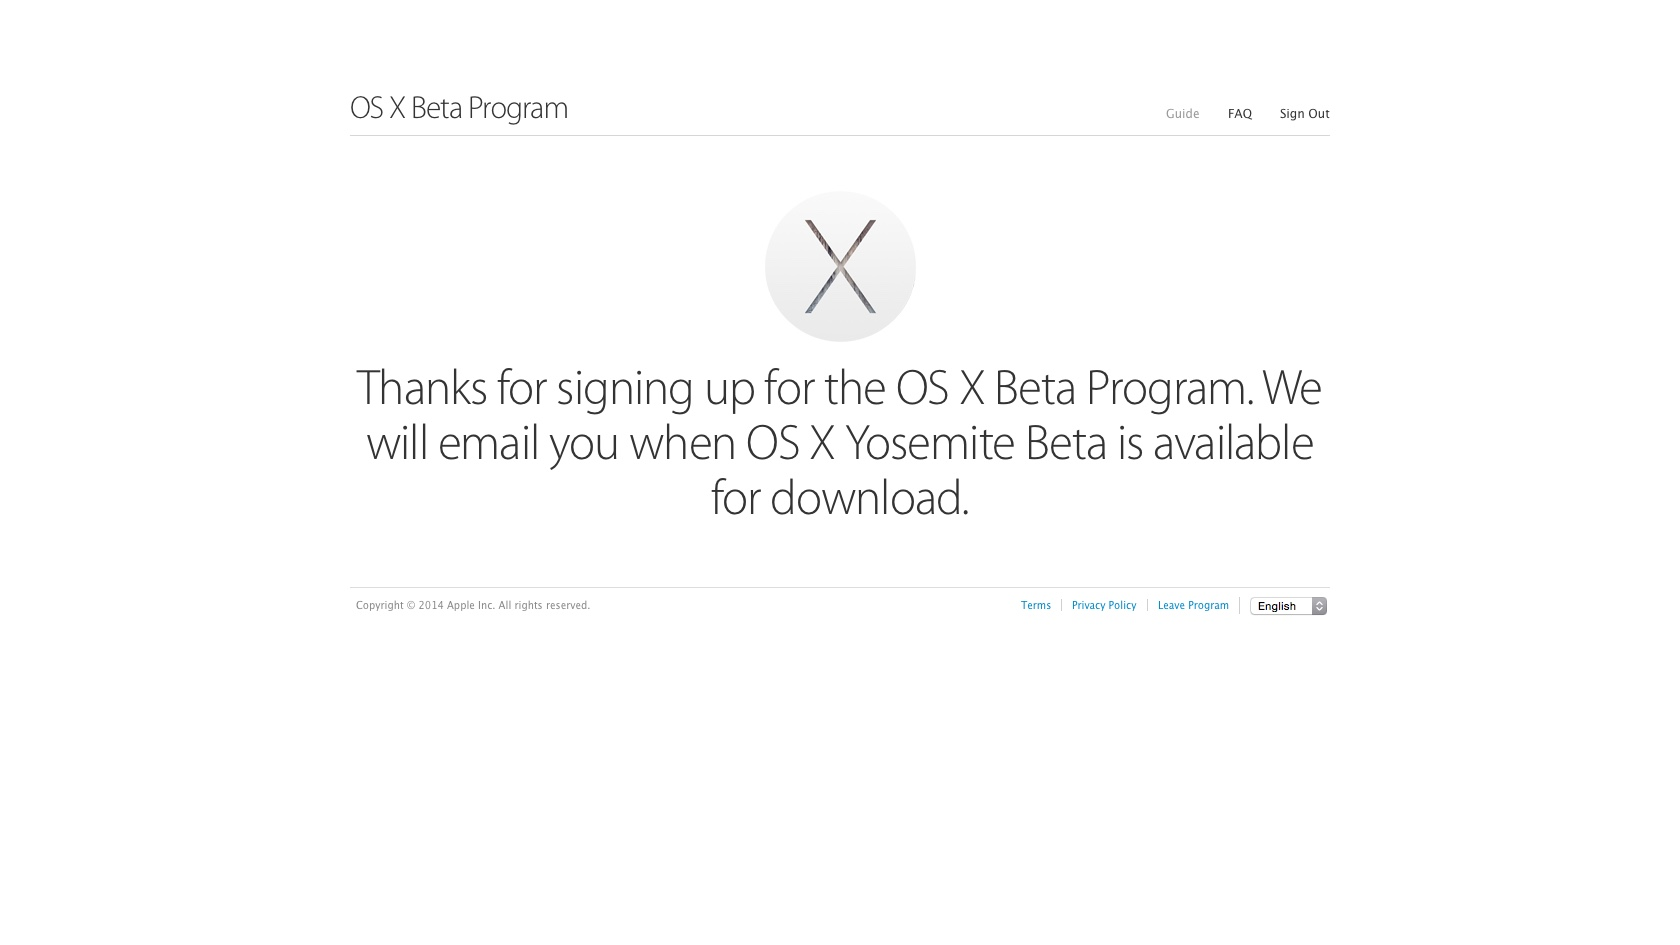 OS X Yosemite Beta Program The Wait